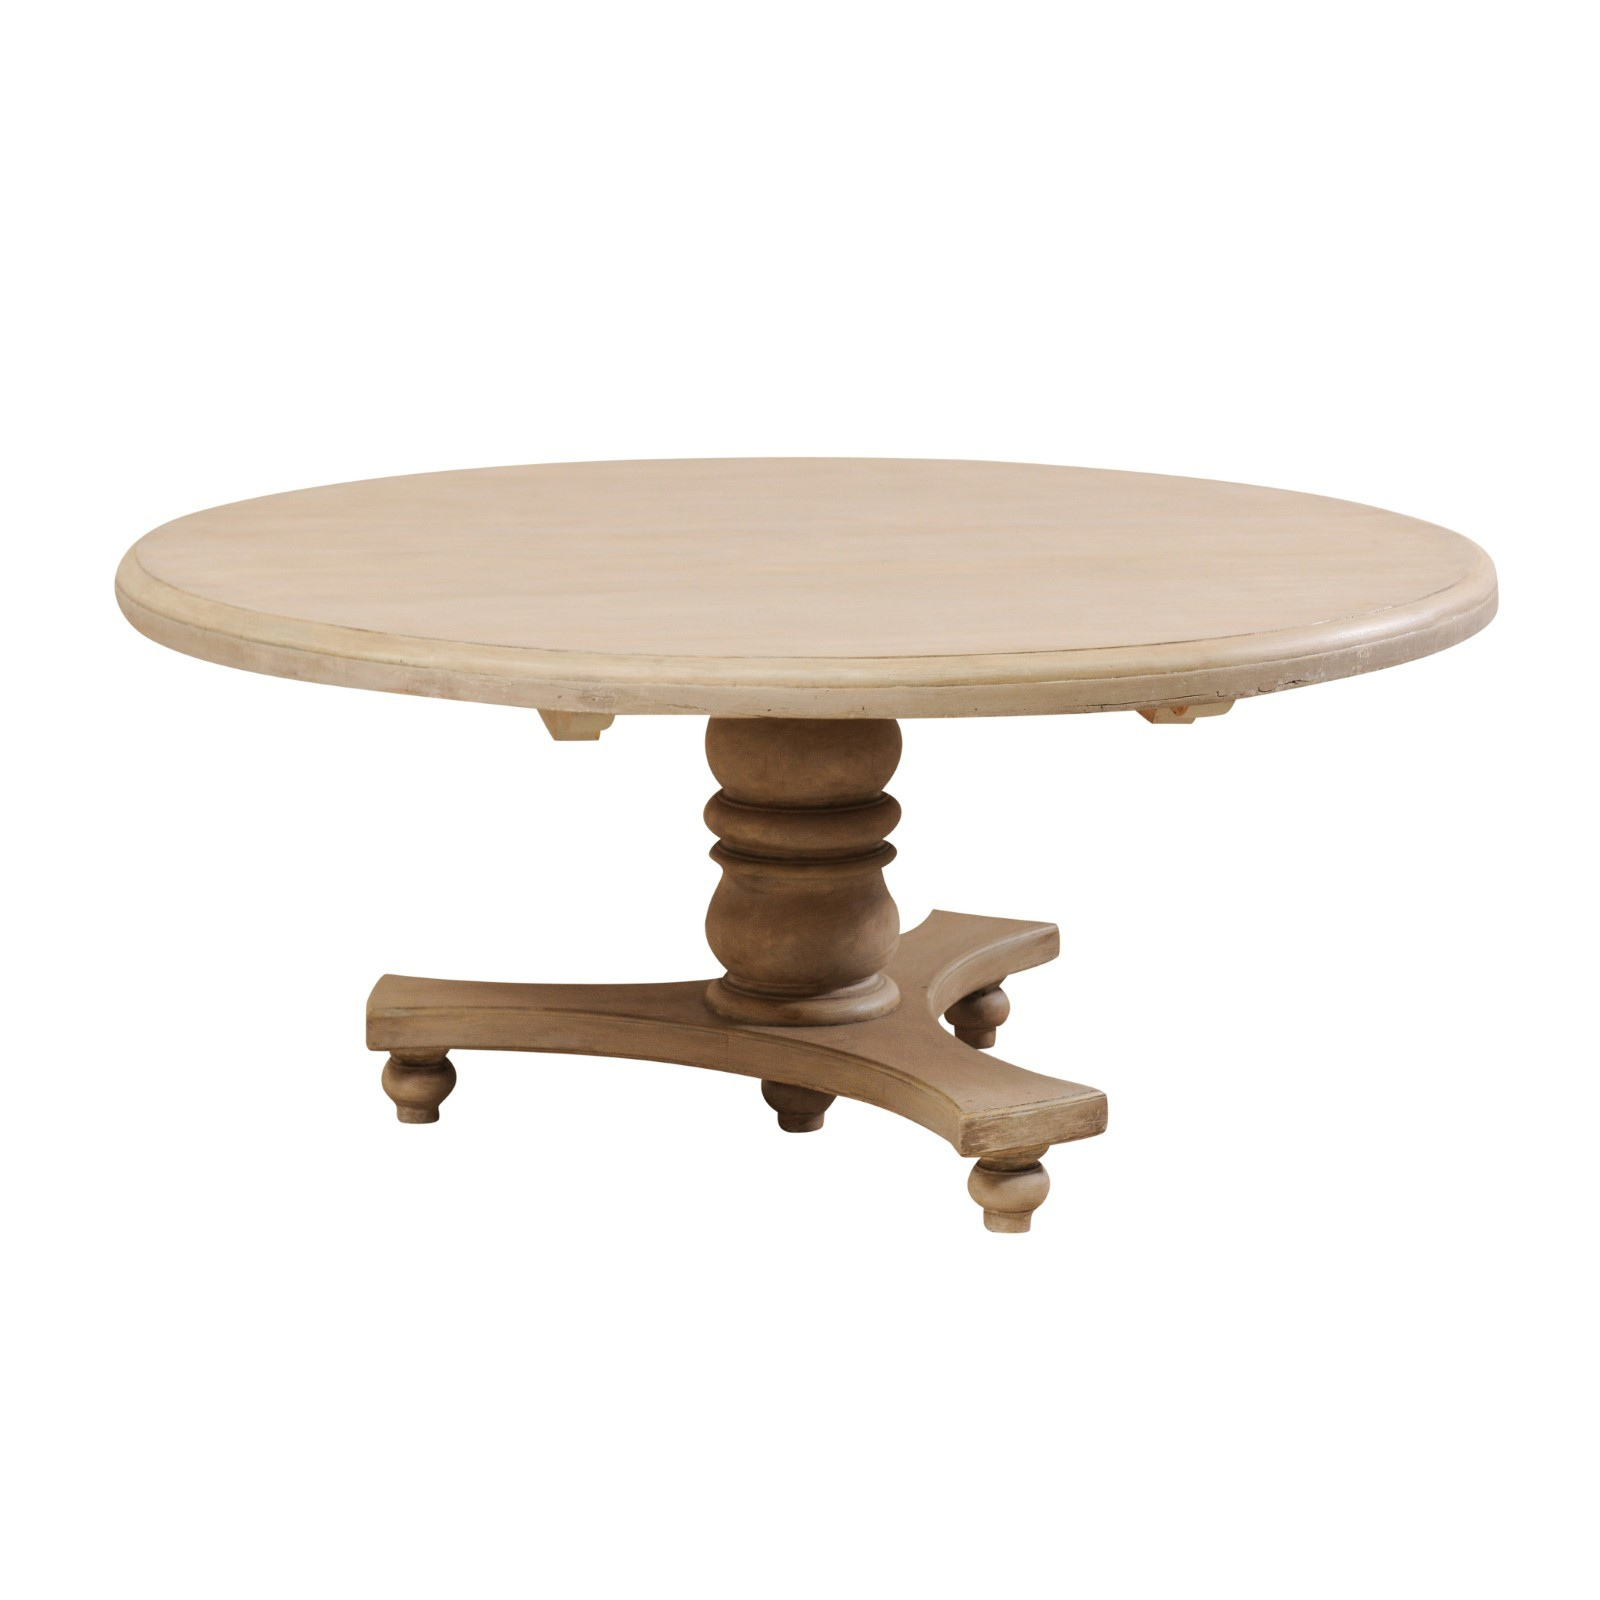 "Round & Grey Colored Table, 65.5"" Dia."